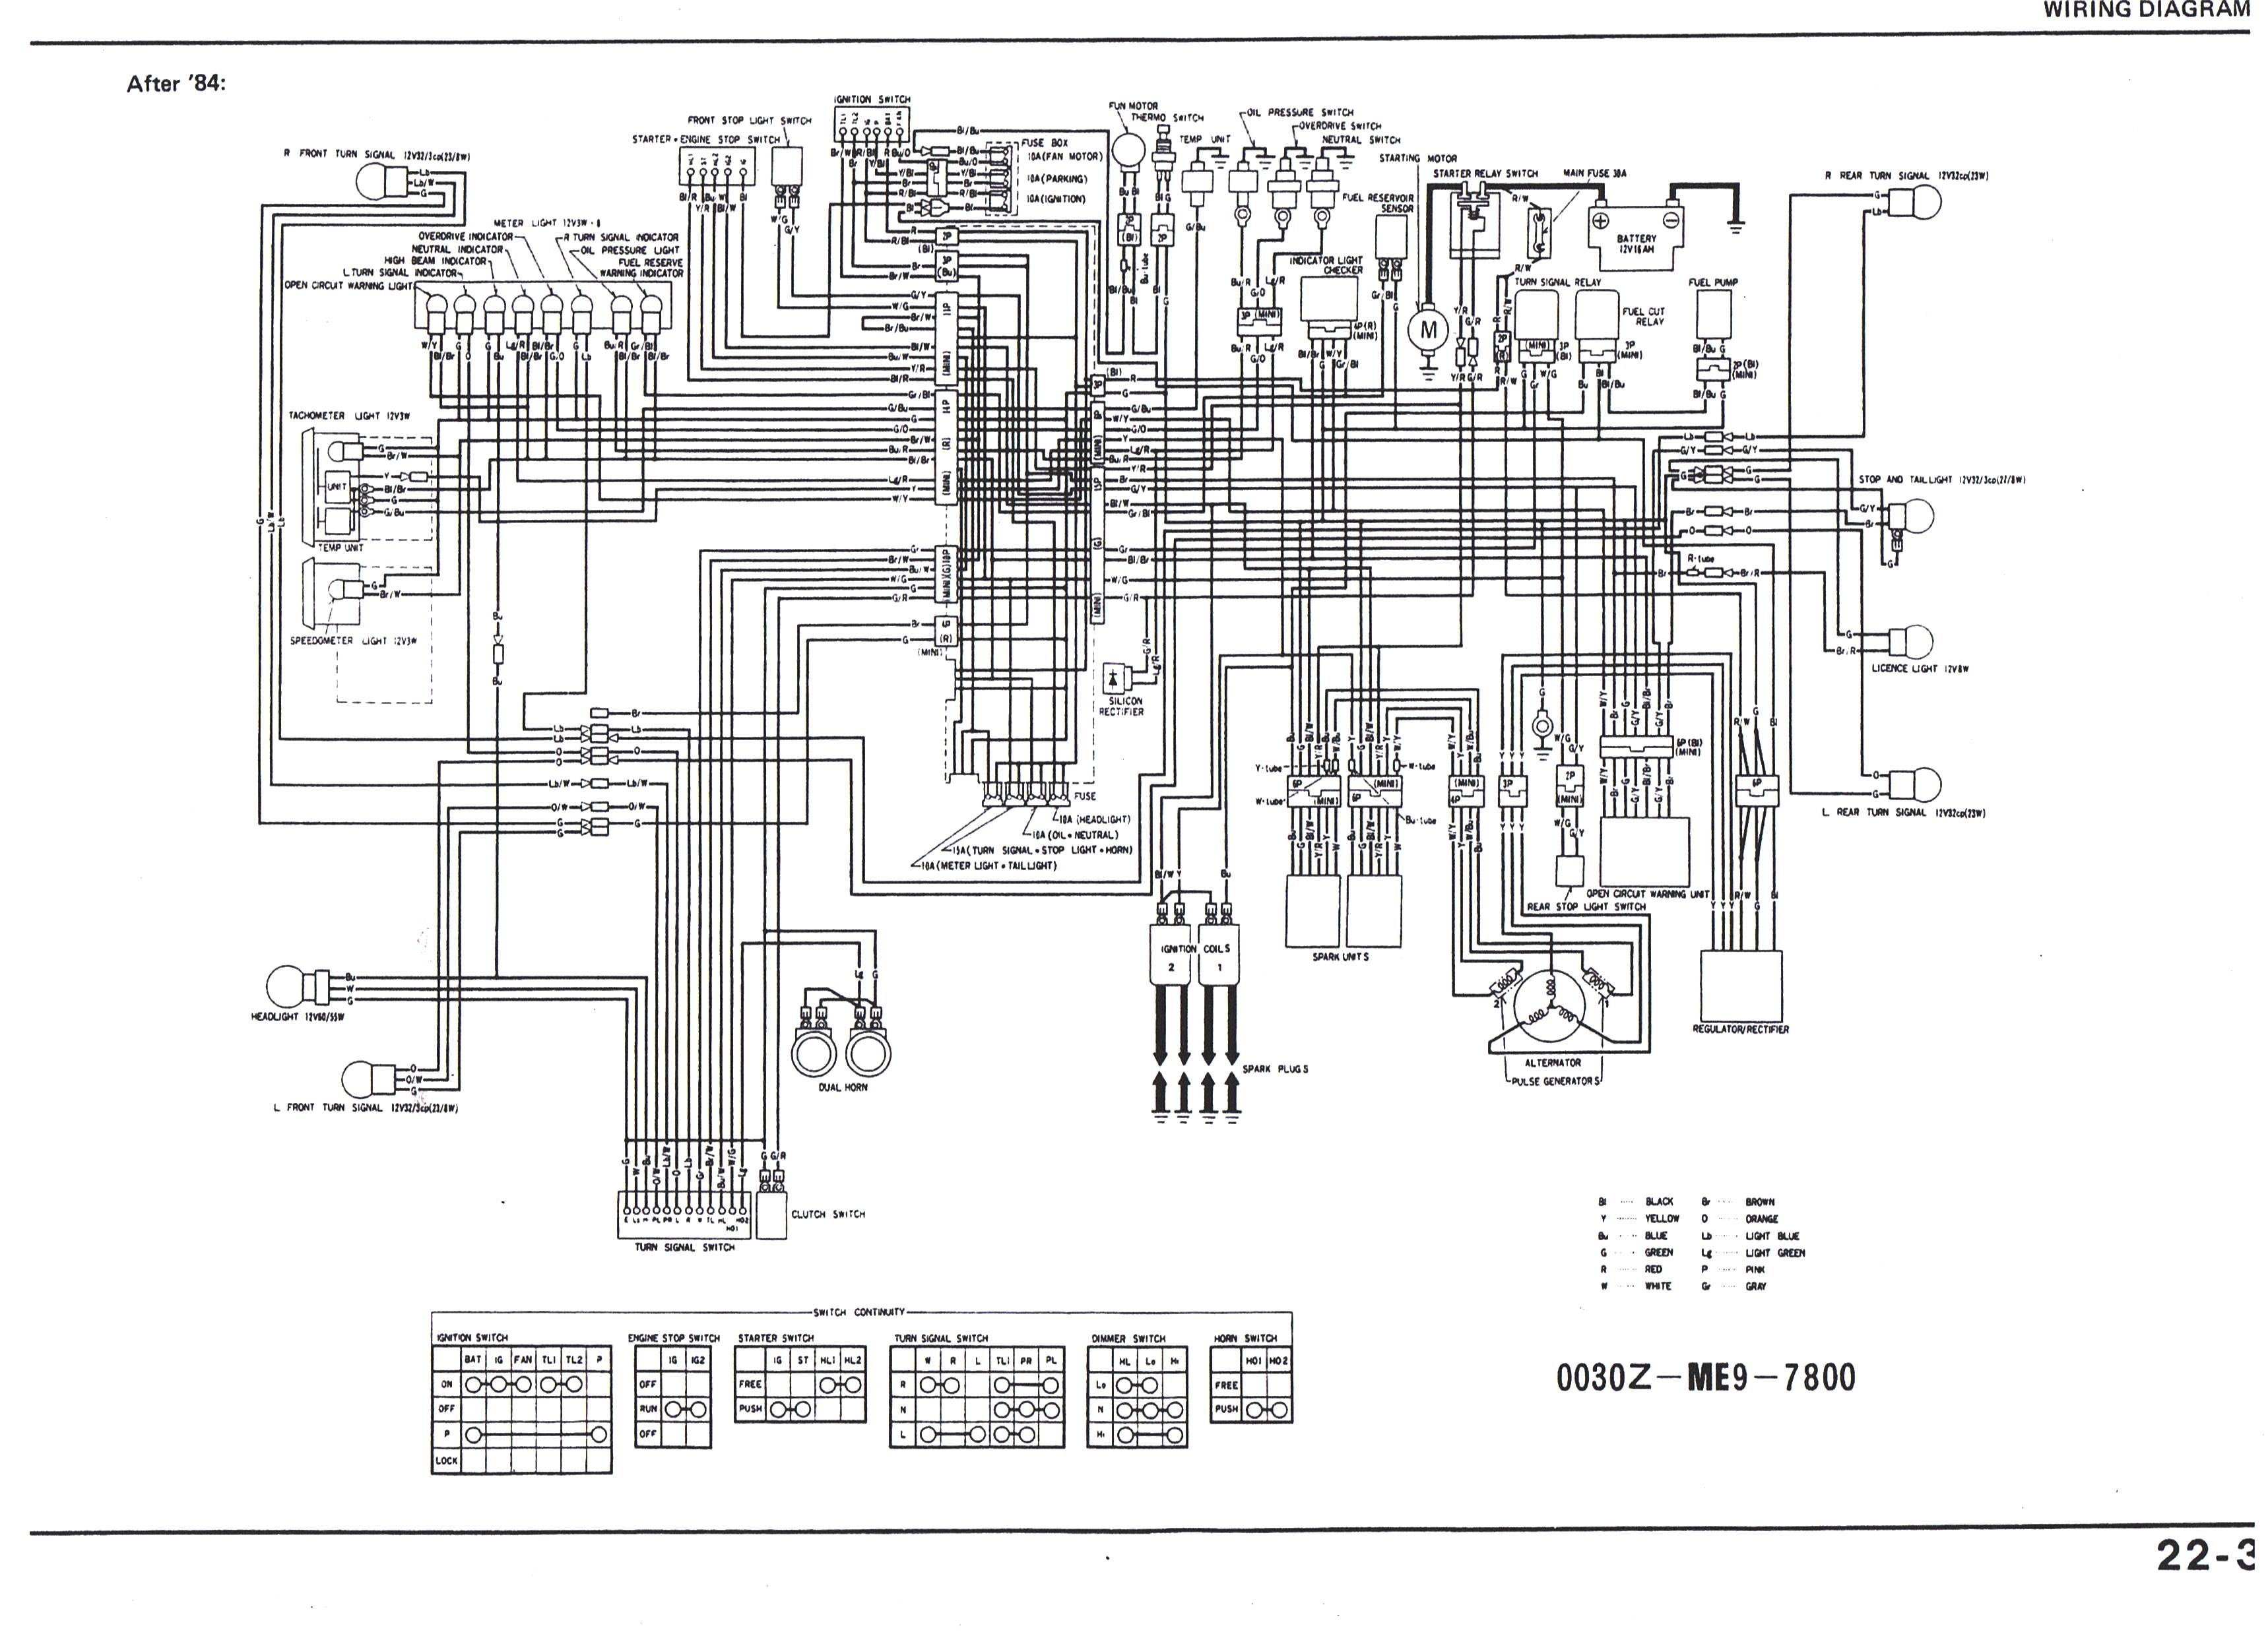 e46 dme wiring diagram with Bmw Wiring Diagram E36 318i M43 on Bmw E30 Fuel Pump Relay Location likewise E46 Engine Wiring Harness further Bmw E46 Dme Relay Wiring Diagrams further Viewthread moreover Bmw Wiring Diagram E36 318i M43.